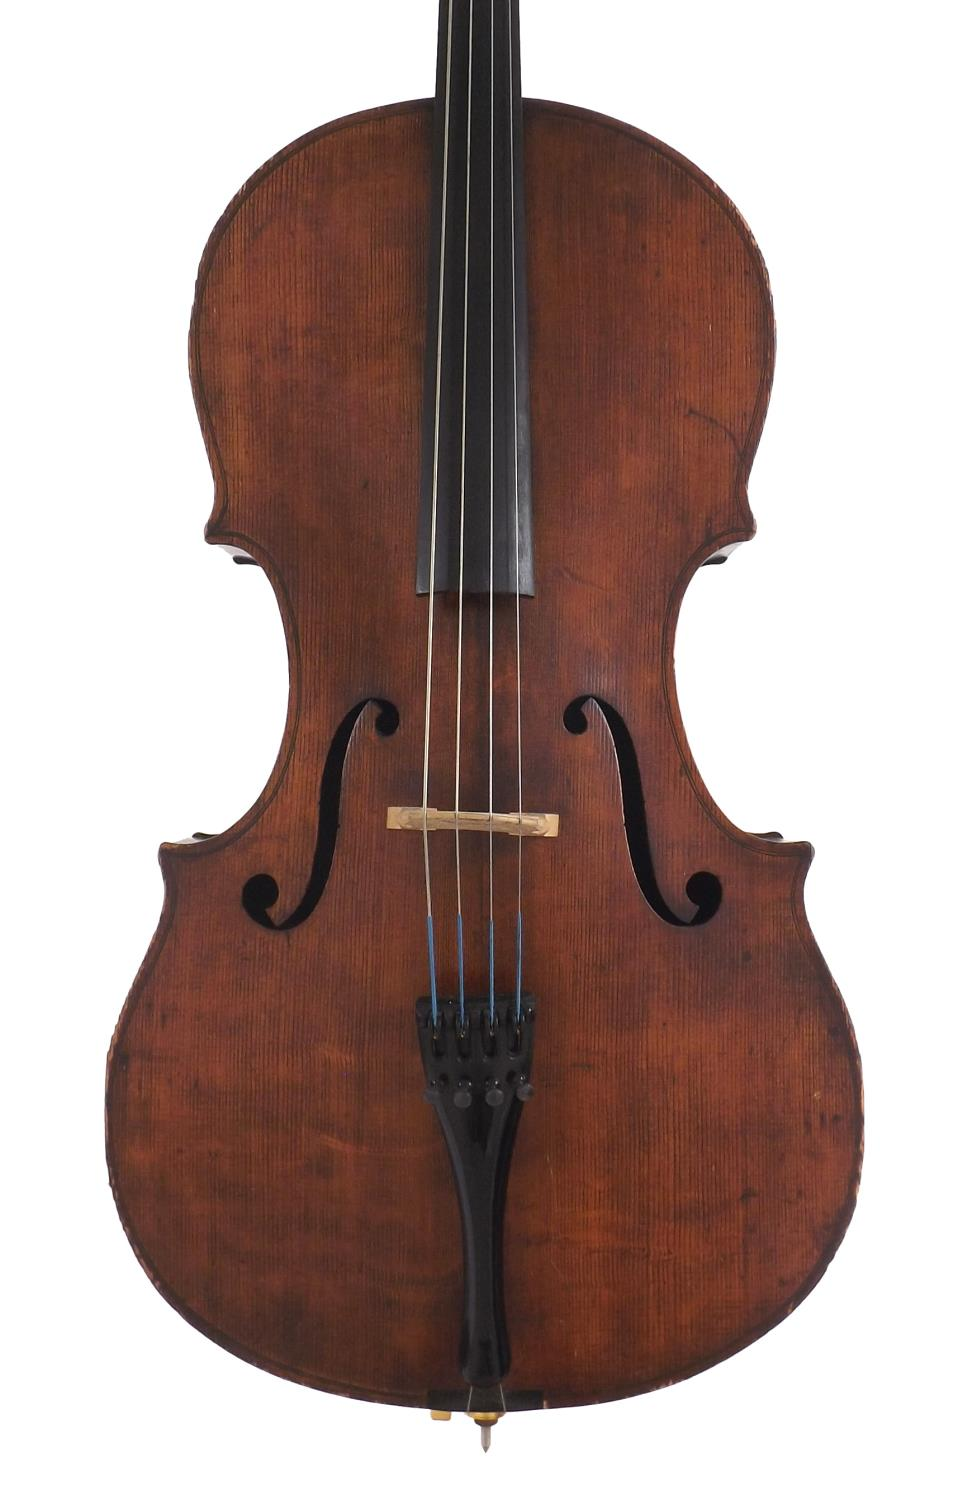 Interesting 19th century violoncello labelled Gustave Mavard, Brussels 1889, the two piece back of